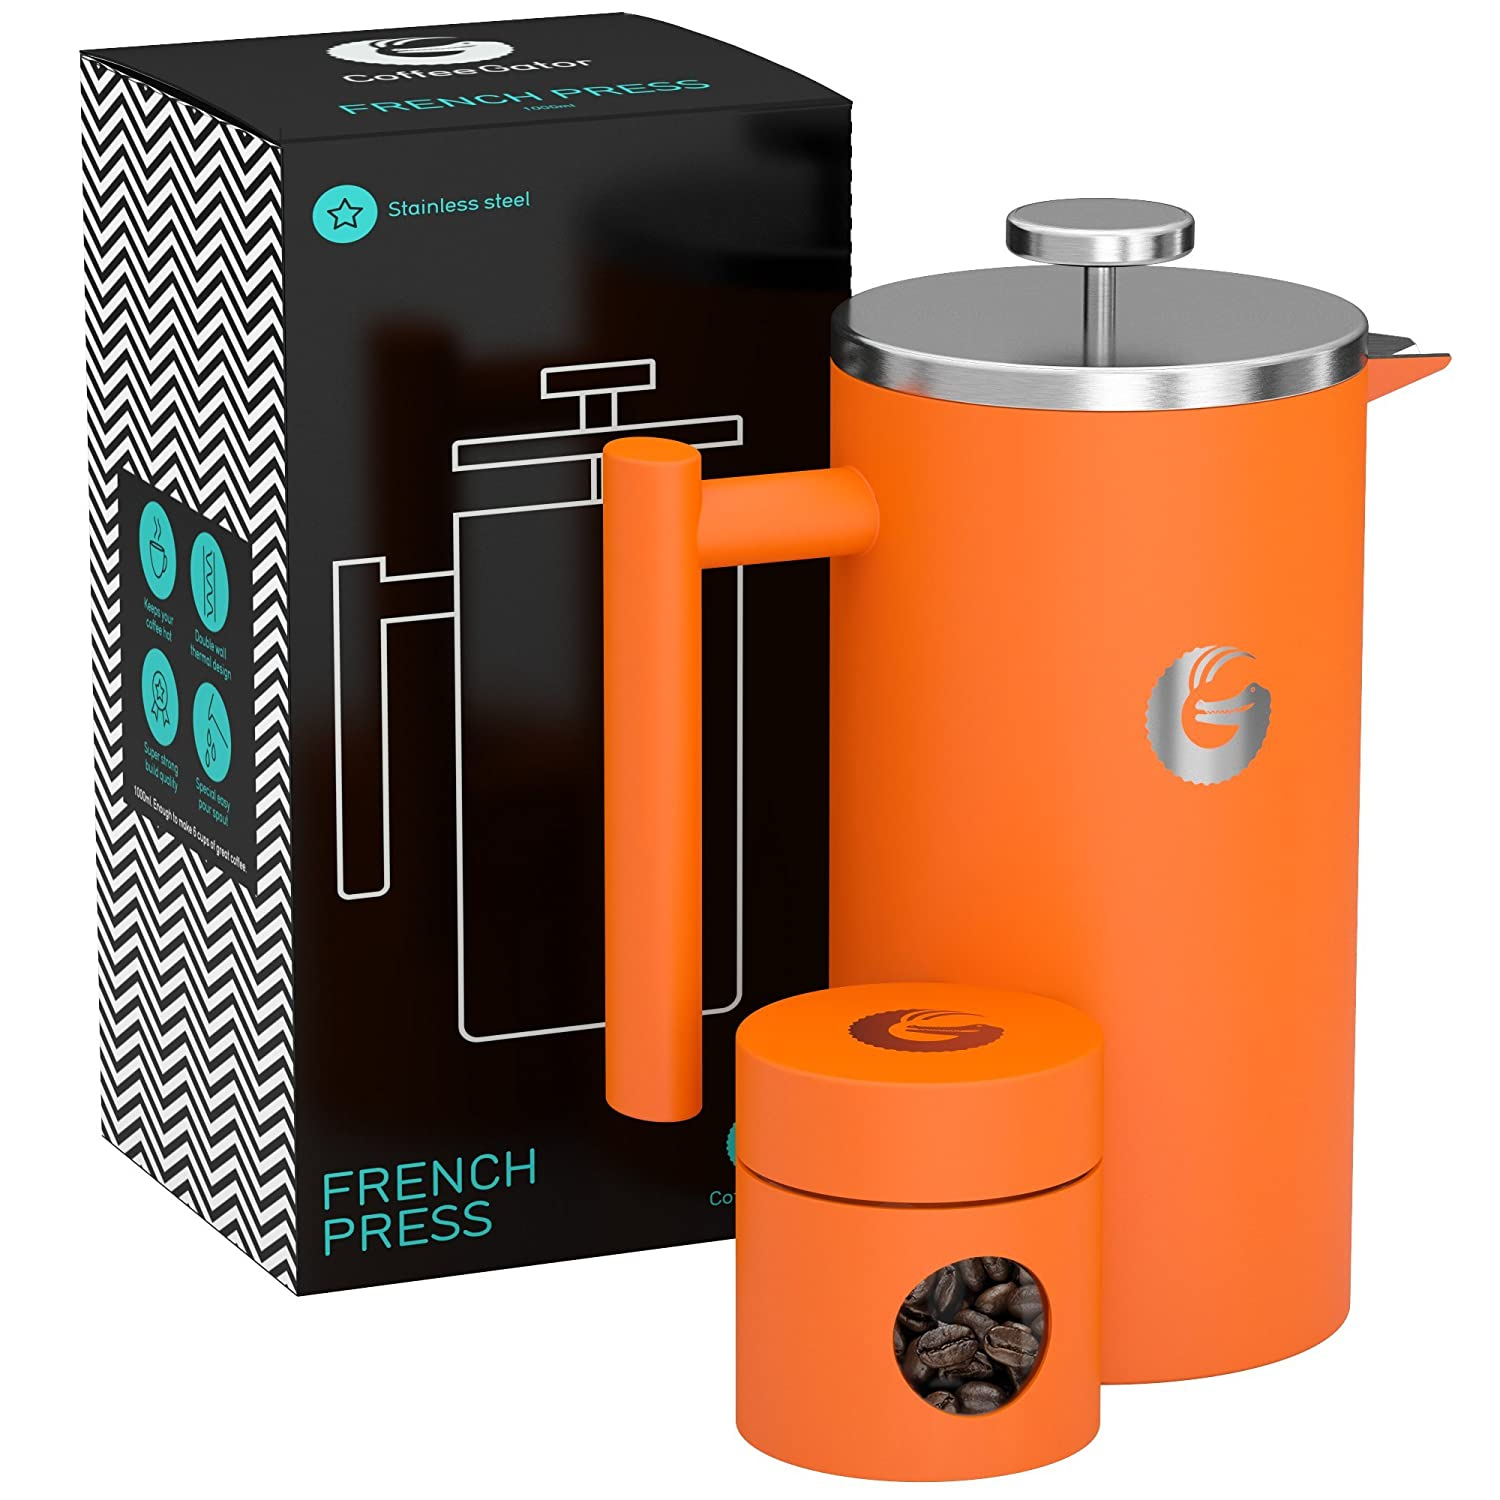 Large Coffee Press Brewer – Vacuum Insulated Stainless Steel, Orange, 34 Ounce